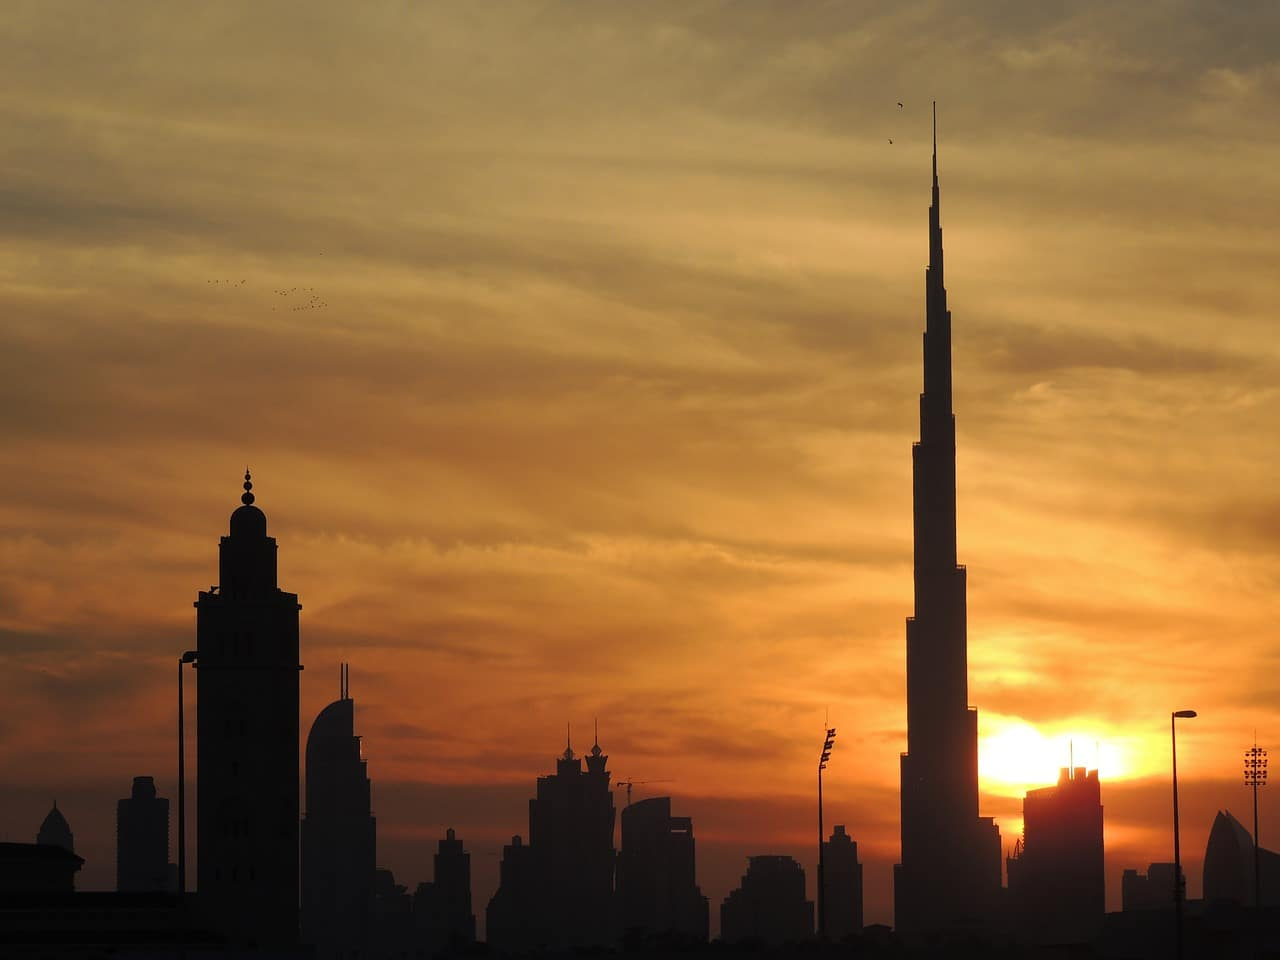 burj khalifa at the top sunrise